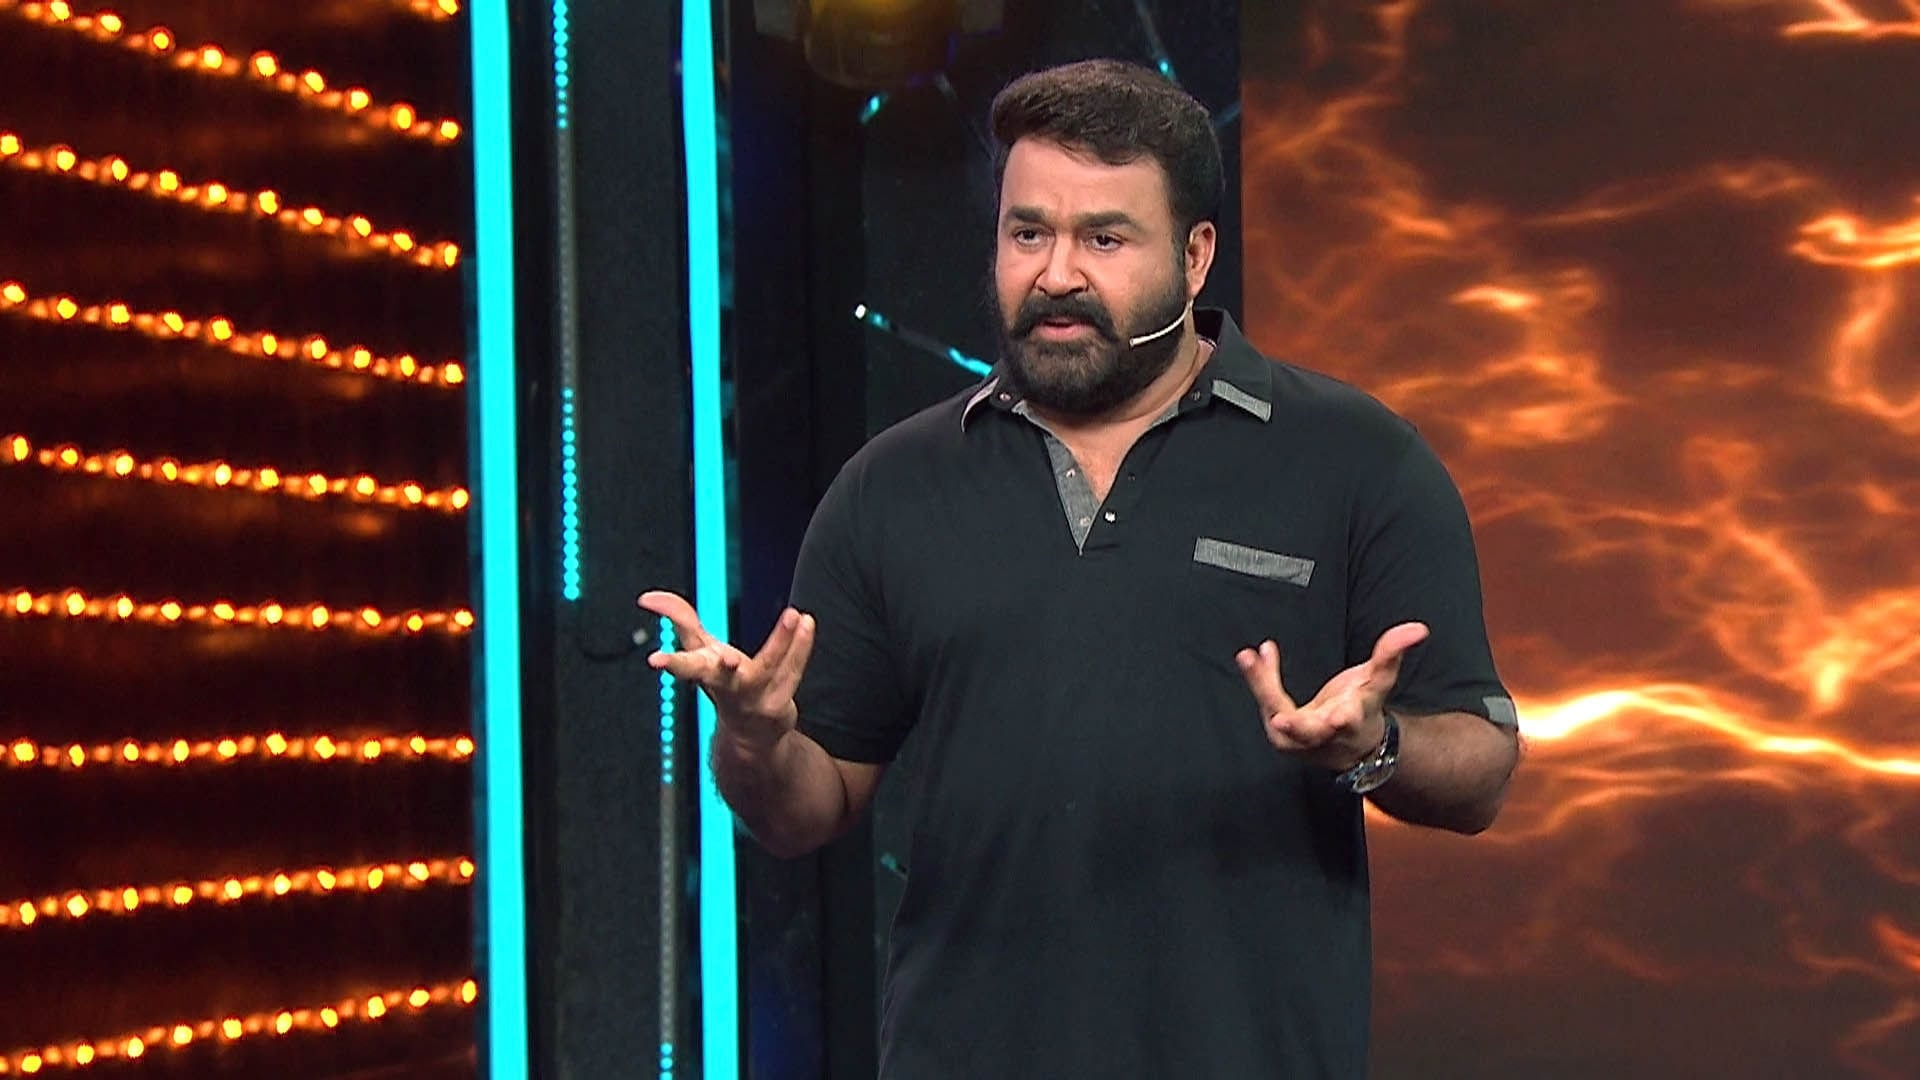 Bigg Boss - Season 1 Episode 29 : Day 28: A Shocking Second Eviction